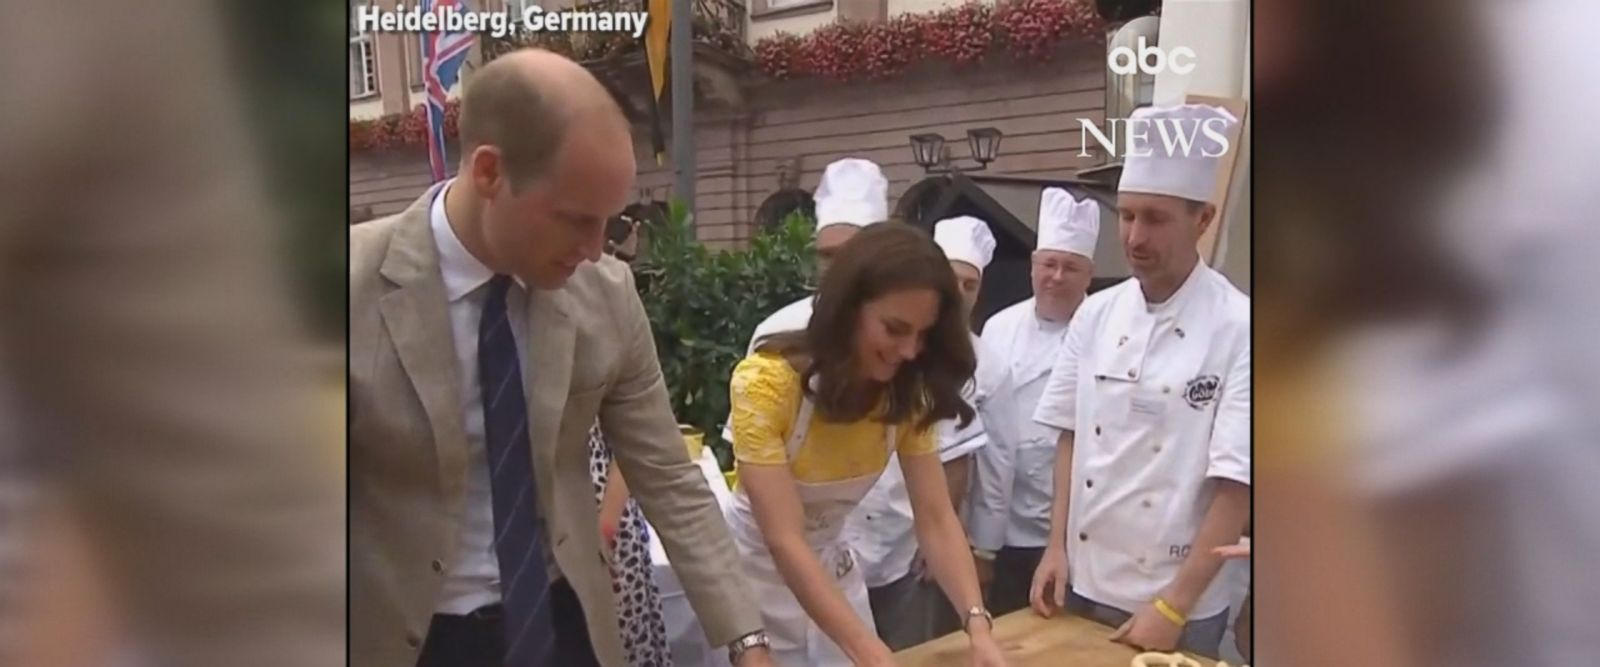 Prince William and Princess Kate learned to make pretzels alongside locals in Heidelberg, Germany during their royal tour.